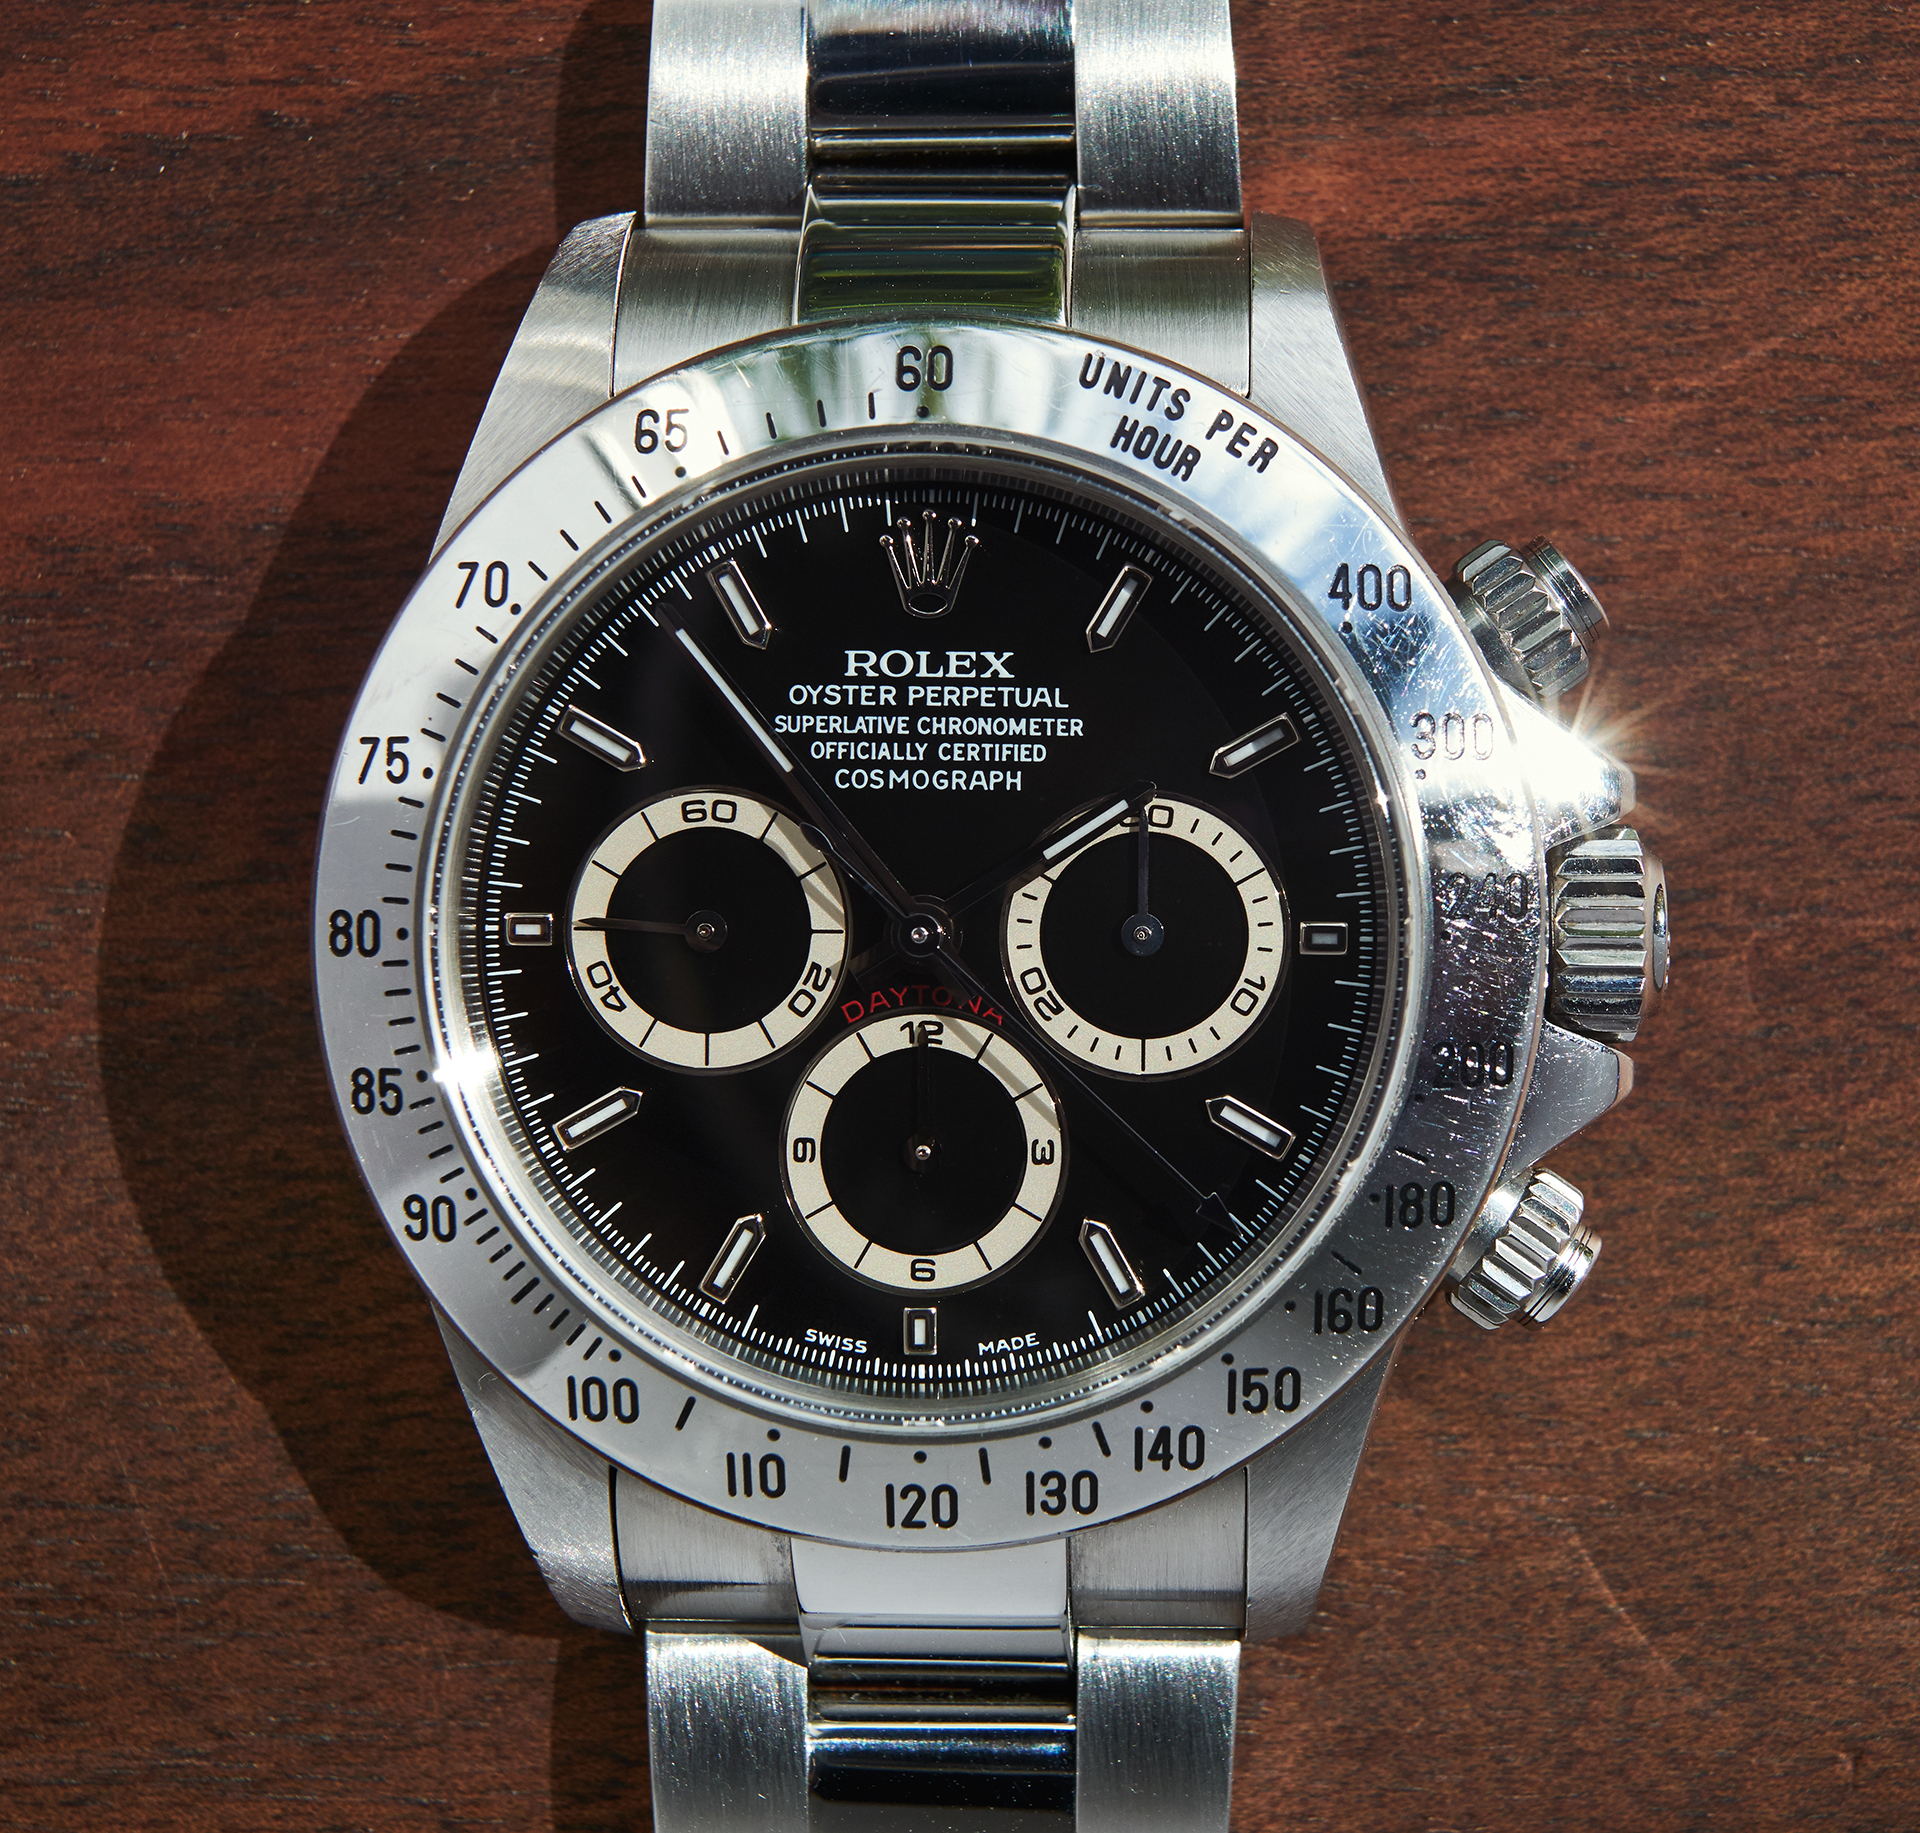 Rolex Daytona 16520 A-series / unpolished & serviced